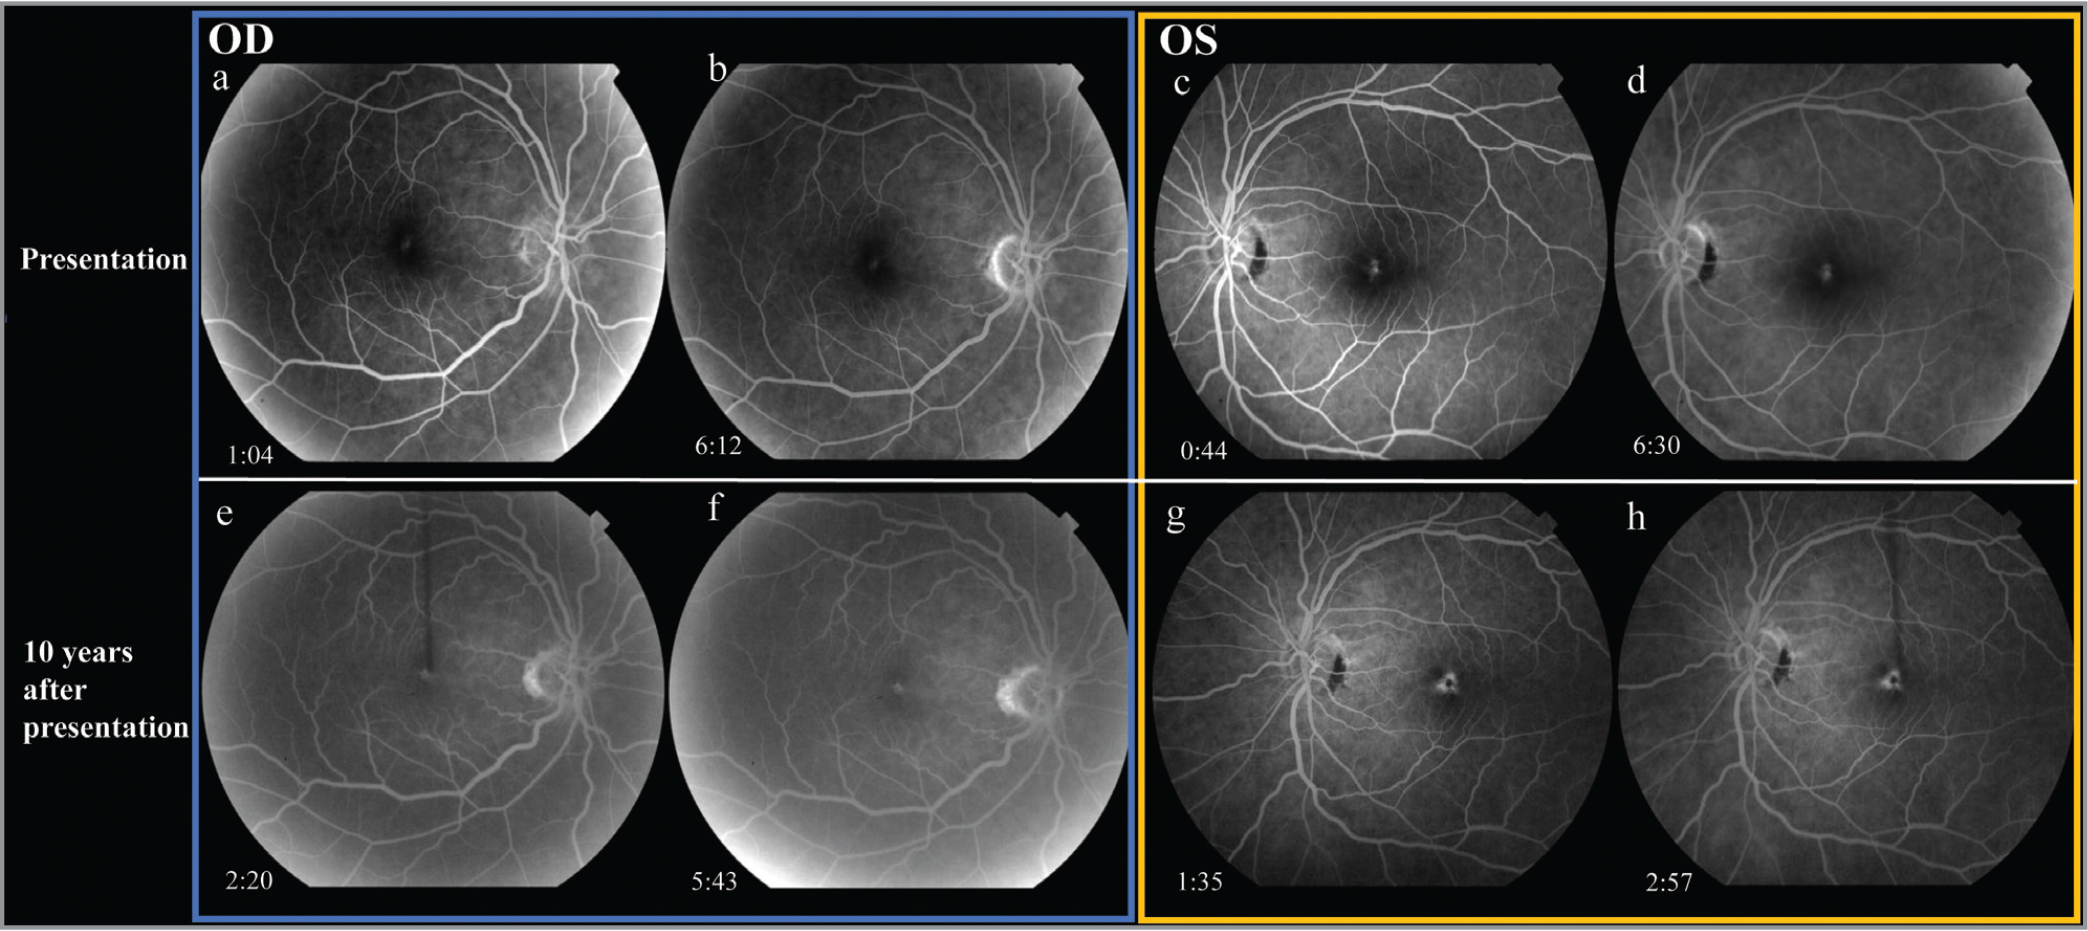 Early (a) and late-phase (b) fluorescein angiography (FA) at presentation (top row) of right eye and early (c) and late-phase (d) FA of the left eye demonstrates an early window defect in both eyes due to loss of outer retinal layers, without leakage or staining. Ten years after presentation (bottom row), early (e) and late-phase (f) FA of the right eye and early (g) and late-phase (h) FA of the left eye demonstrate a persistent window defect, with a focal point of subfoveal hypofluorescence corresponding to the RPE hyperplasia in the left eye (g and h). Transit time is shown in minutes.